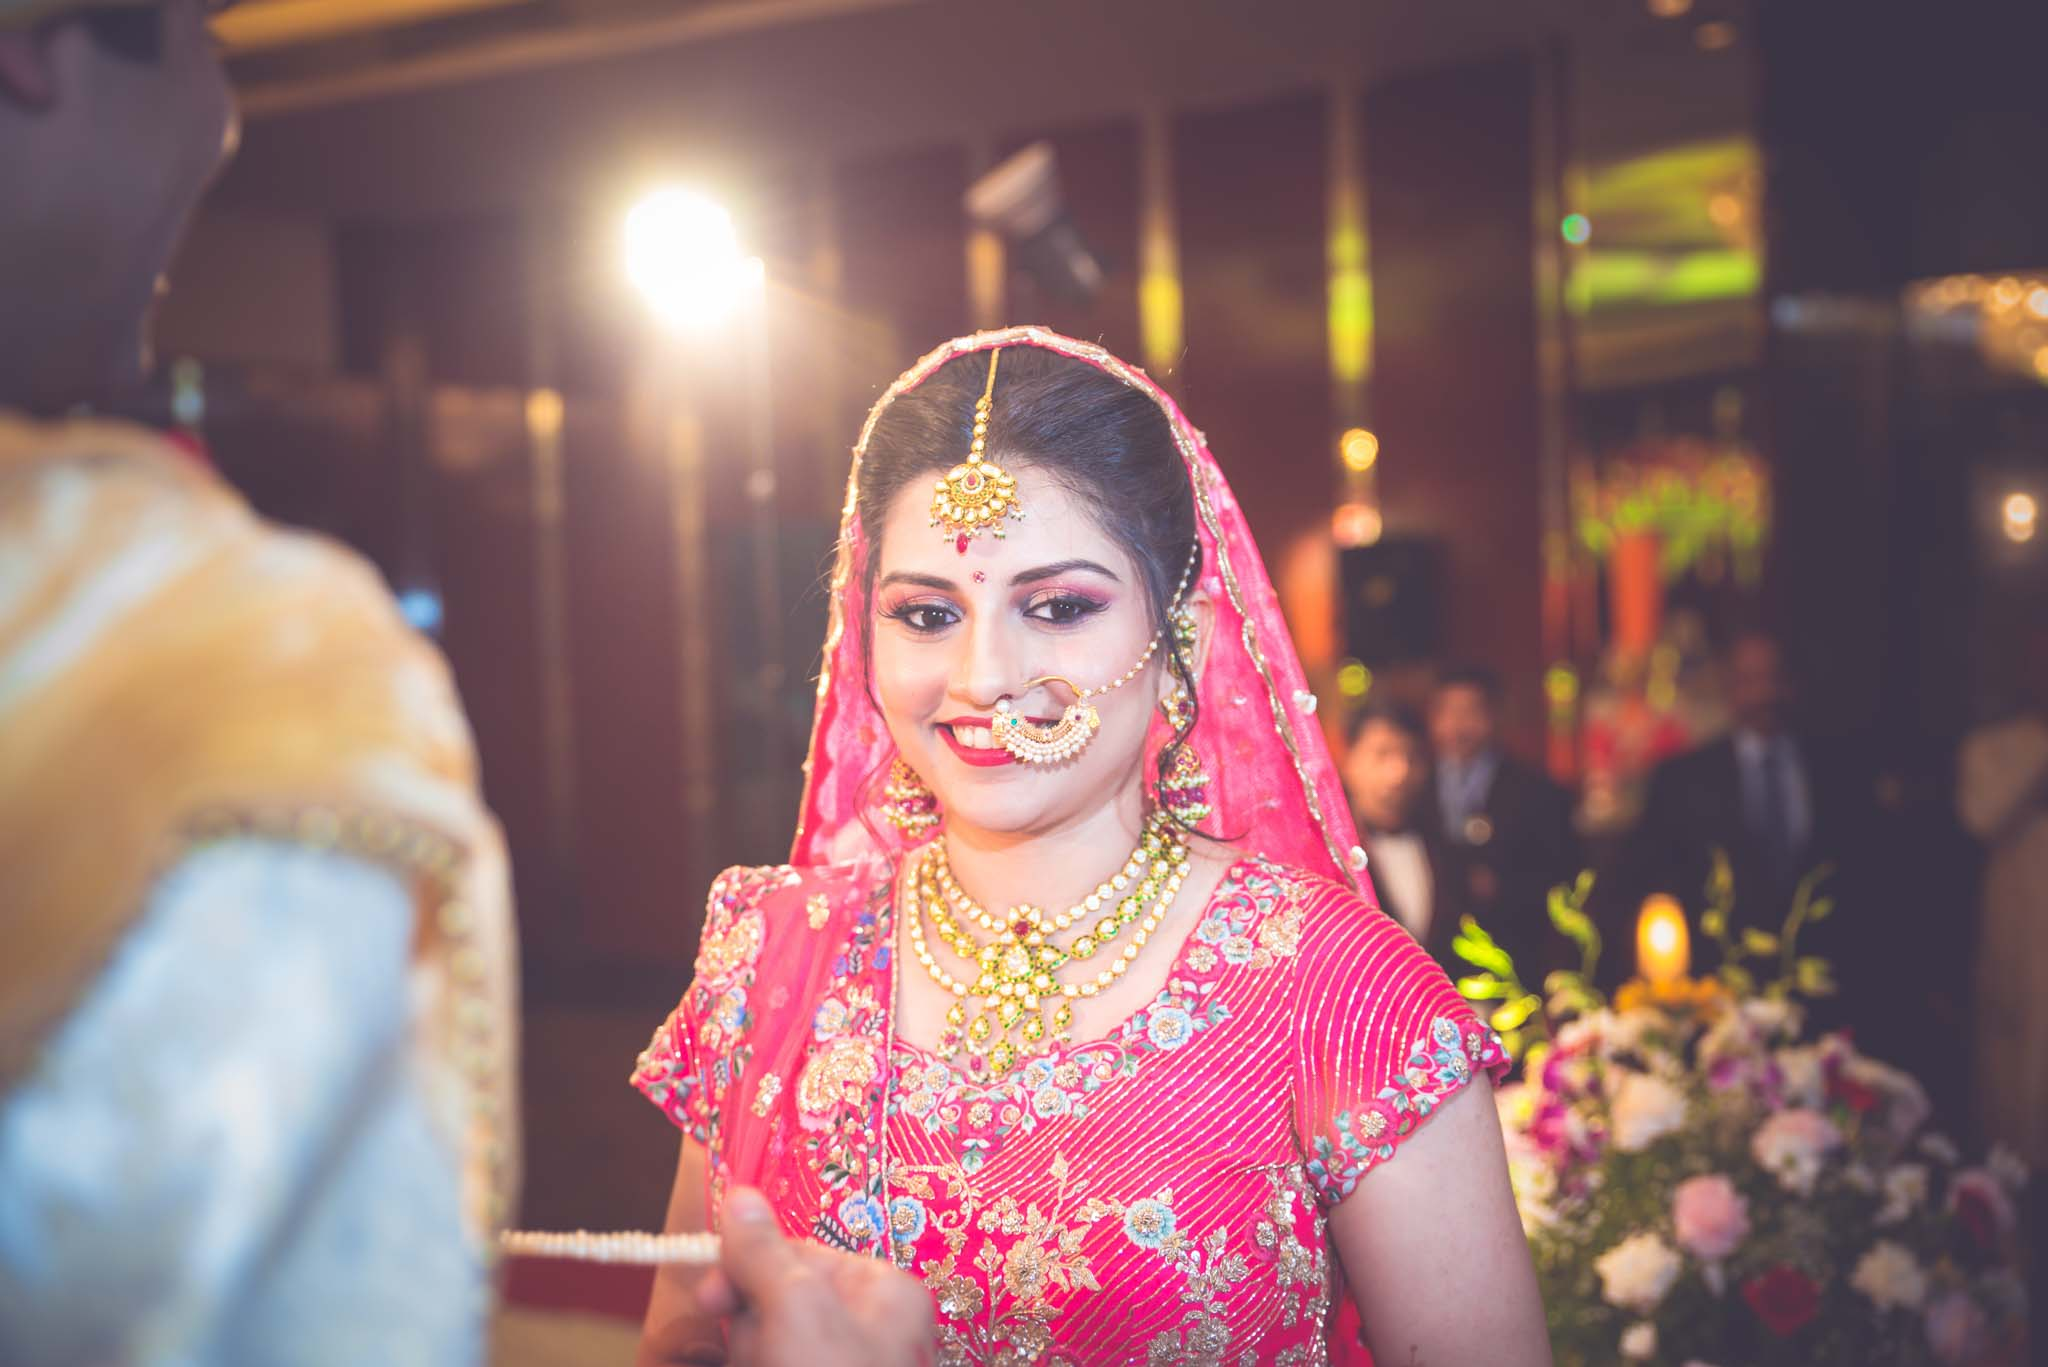 Candid-Wedding-Photography-Nagpur-Destination-62